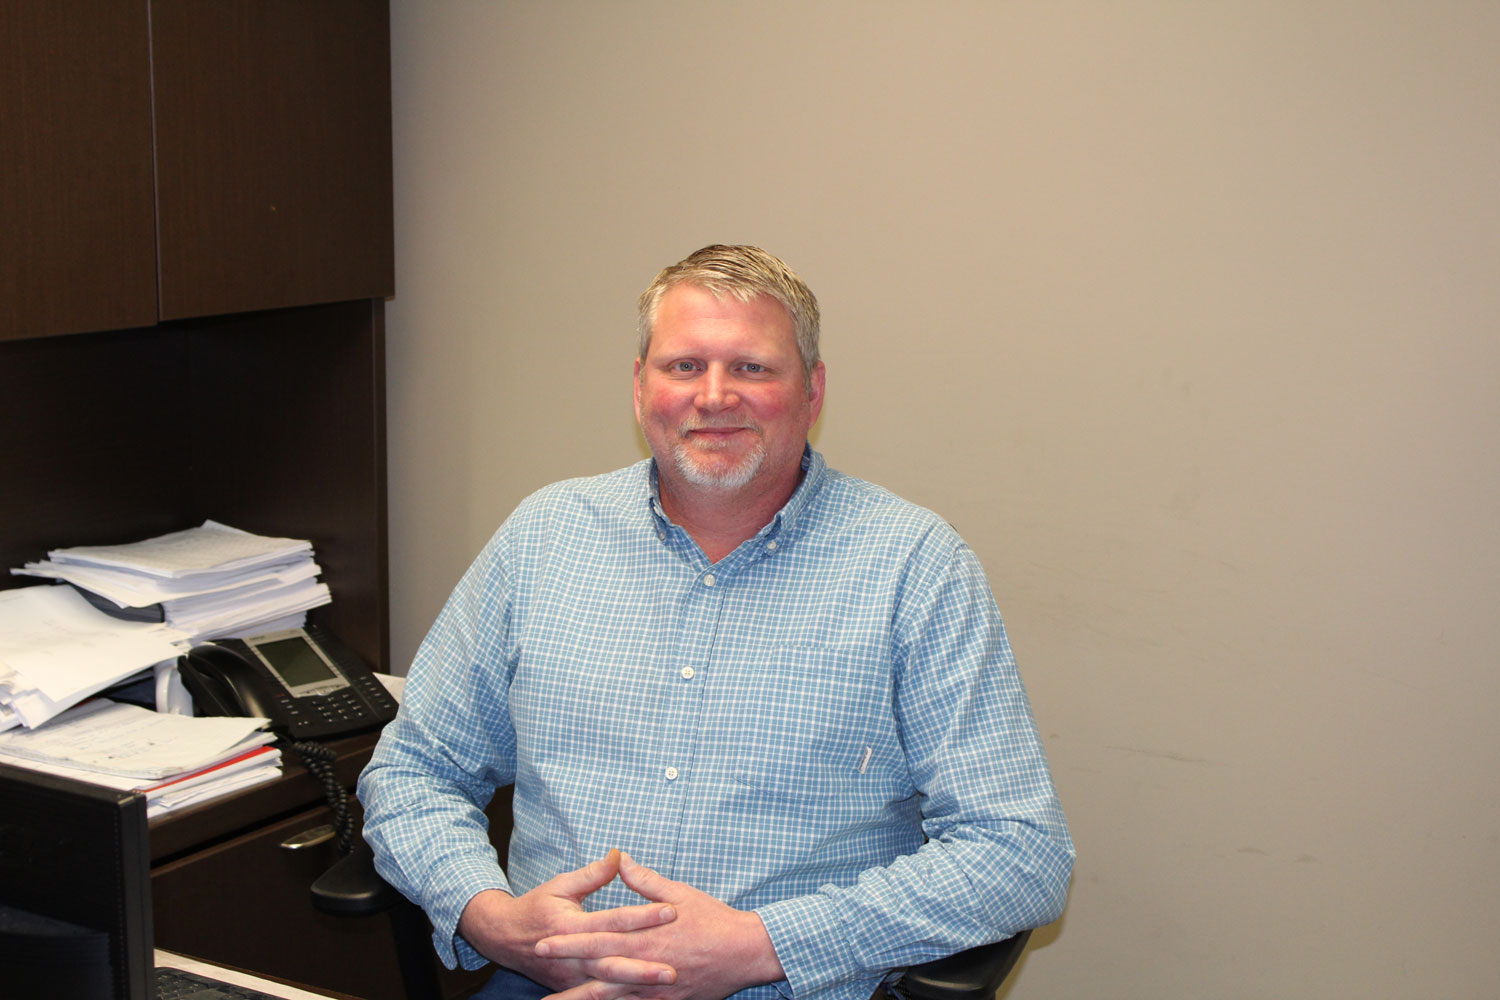 Ashley Baker  Senior Project Manager   E-mail   ABaker@admanelectric.com   Phone  423/622-5103  Fax  423/698-0142  Mobile  423/315-4393